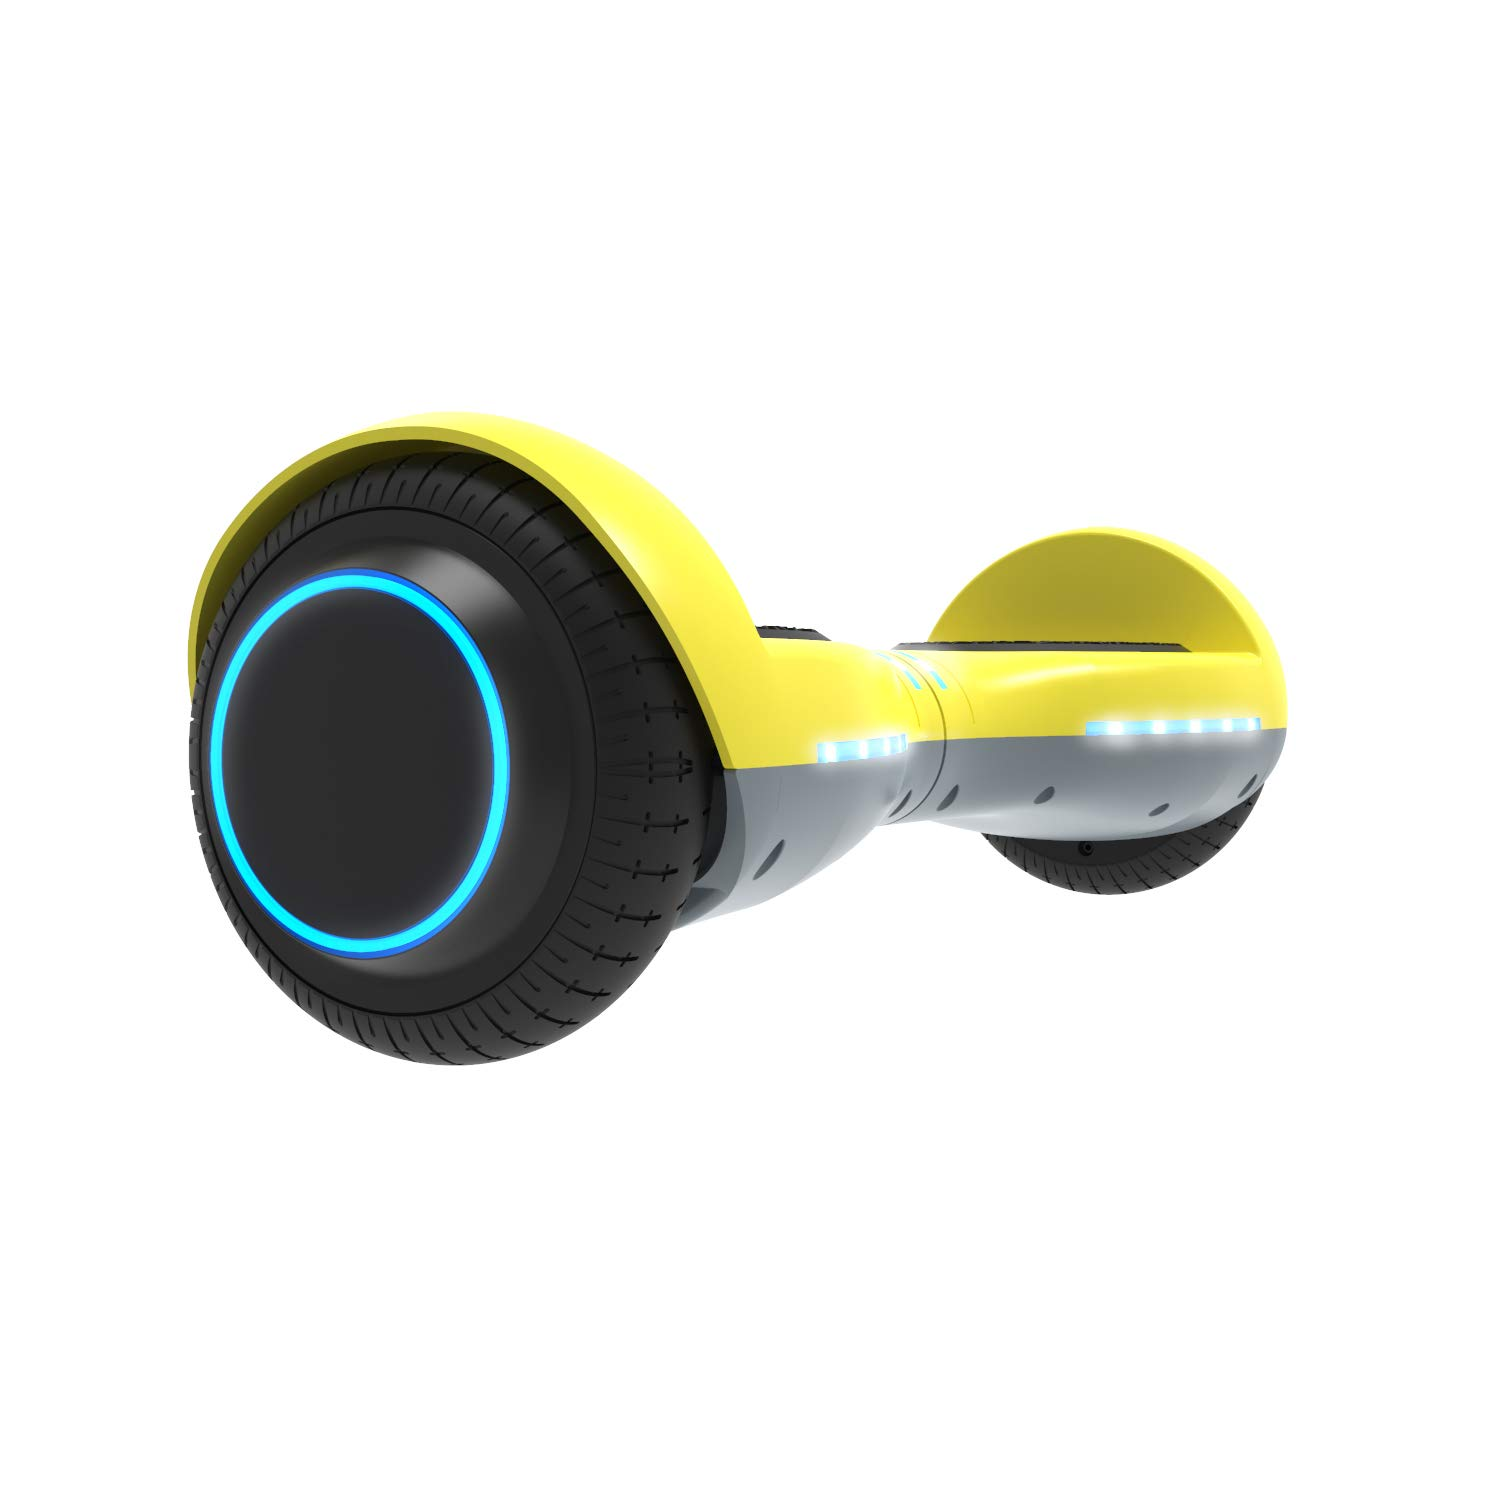 GOTRAX ION LED Hoverboard - UL Certified Hover Board w/Self Balancing Mode (Yellow)